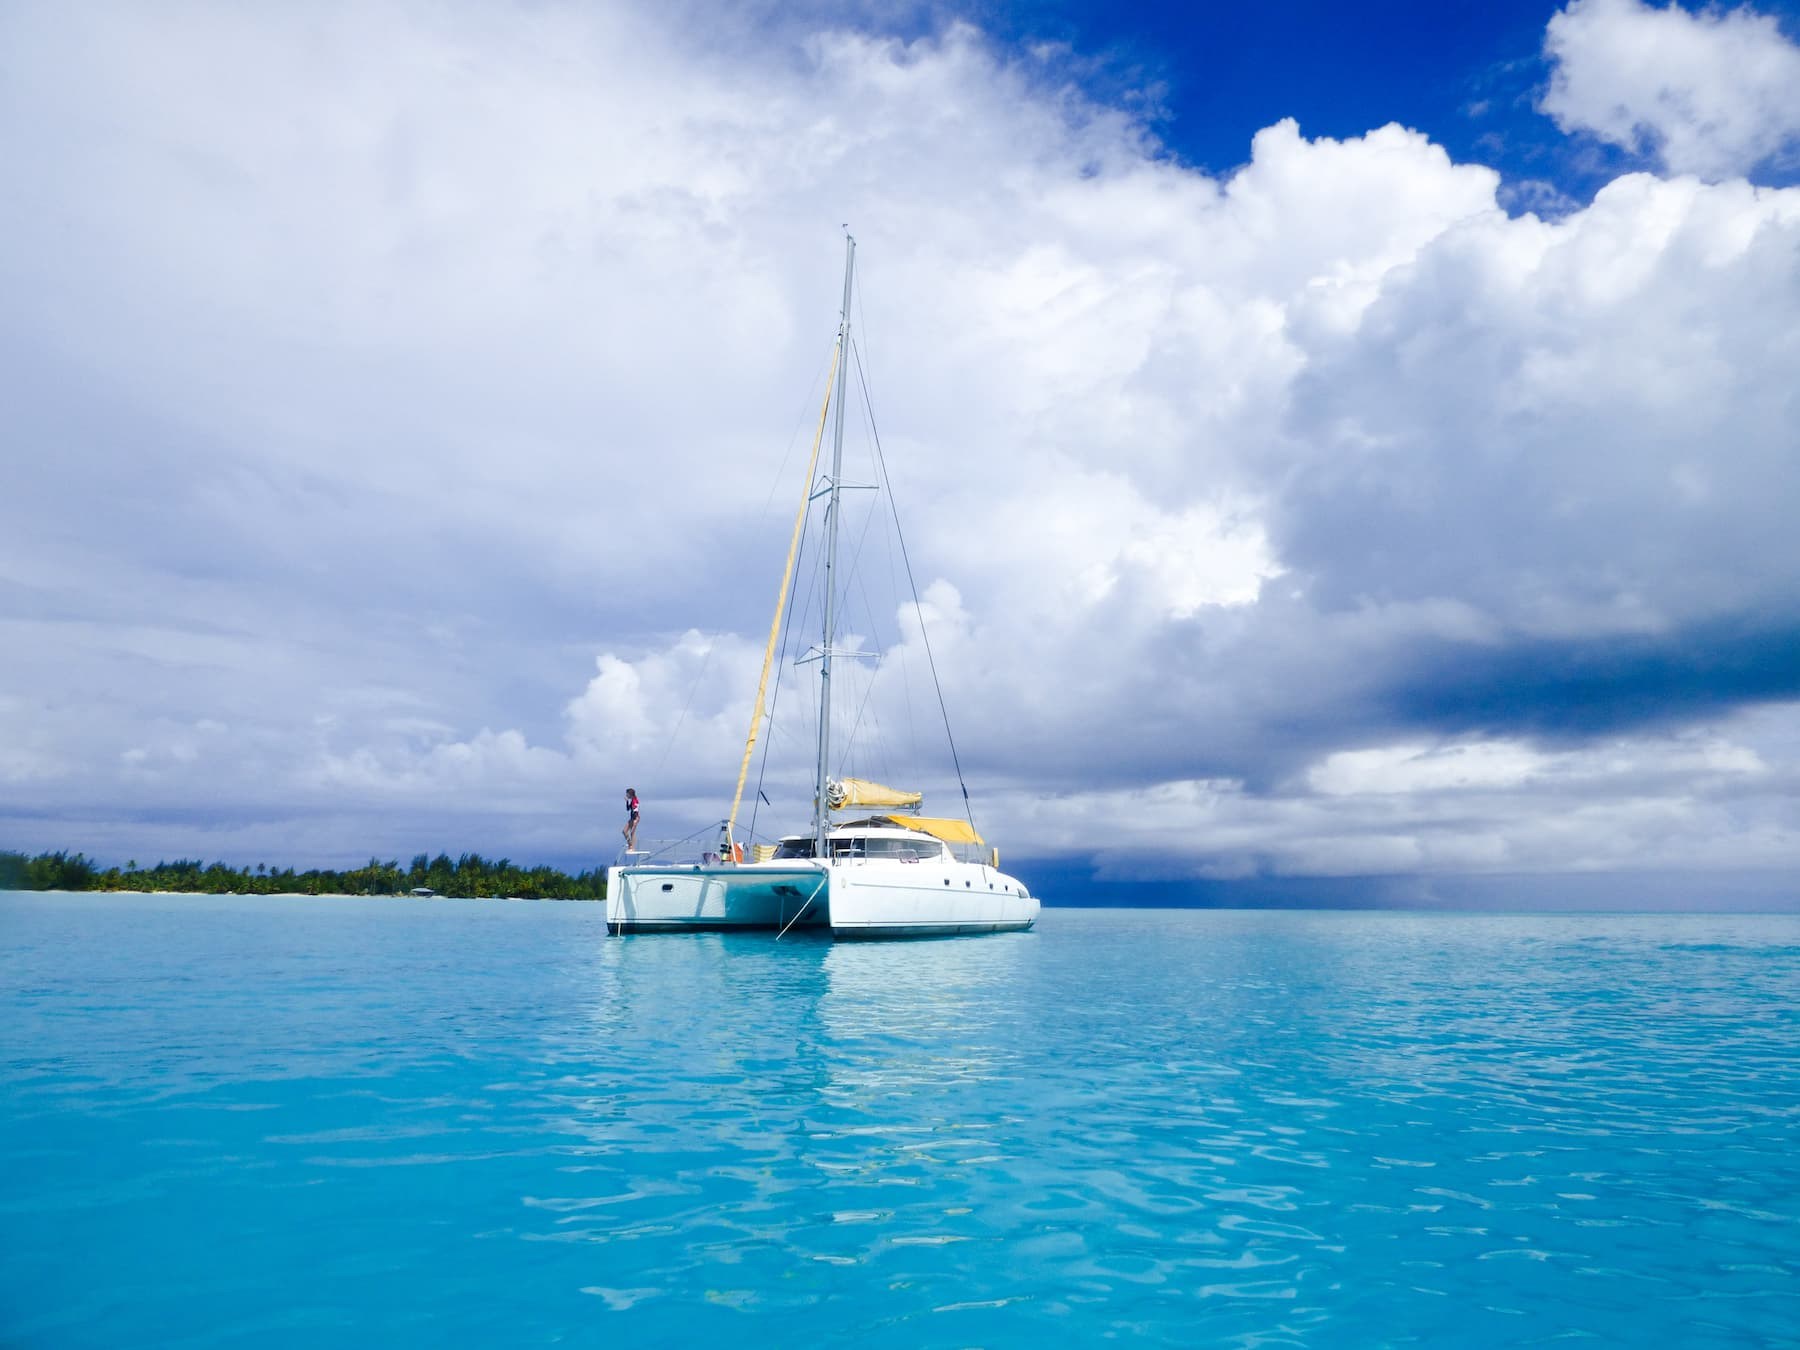 https://tahititourisme.de/wp-content/uploads/2017/08/bateau-tlc-modif-11-copie.jpg